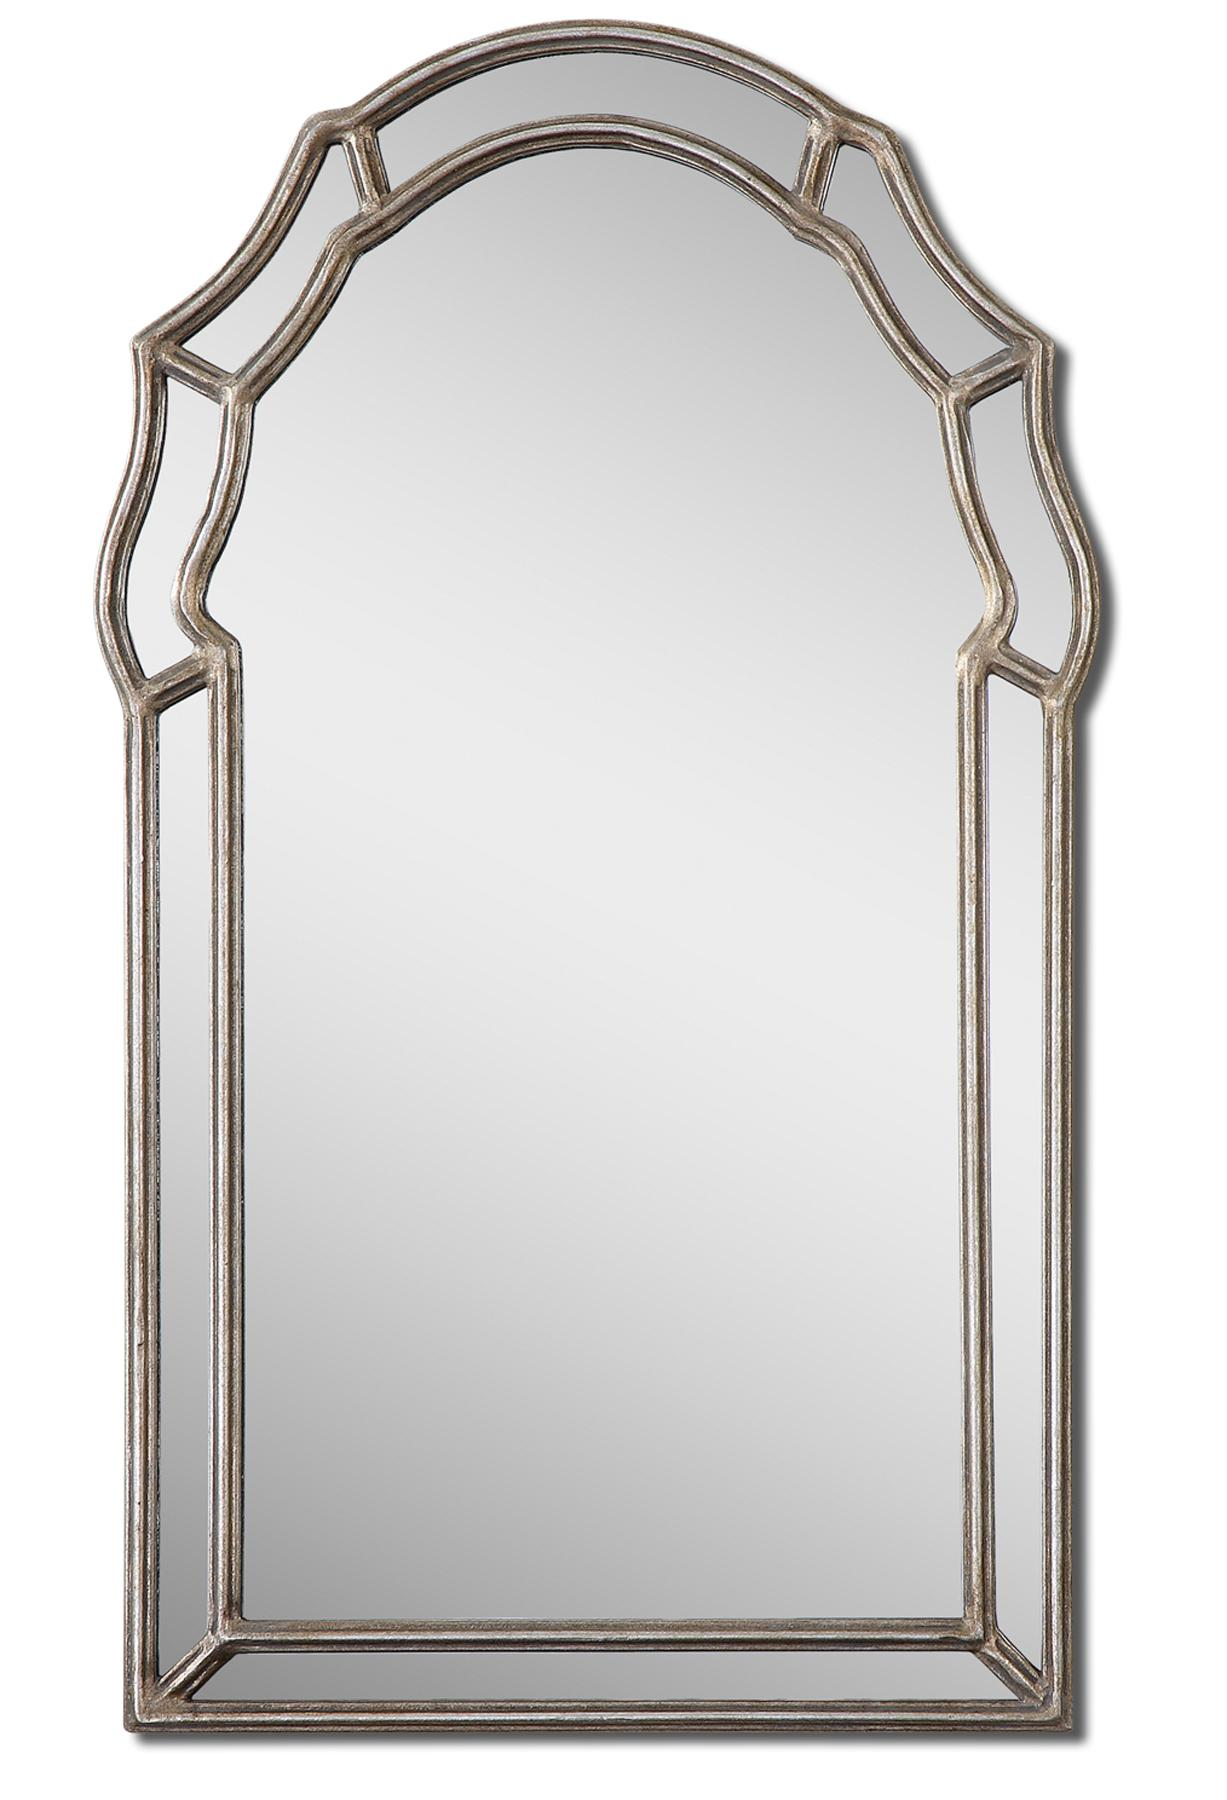 Uttermost Mirrors Petrizzi - Item Number: 12837